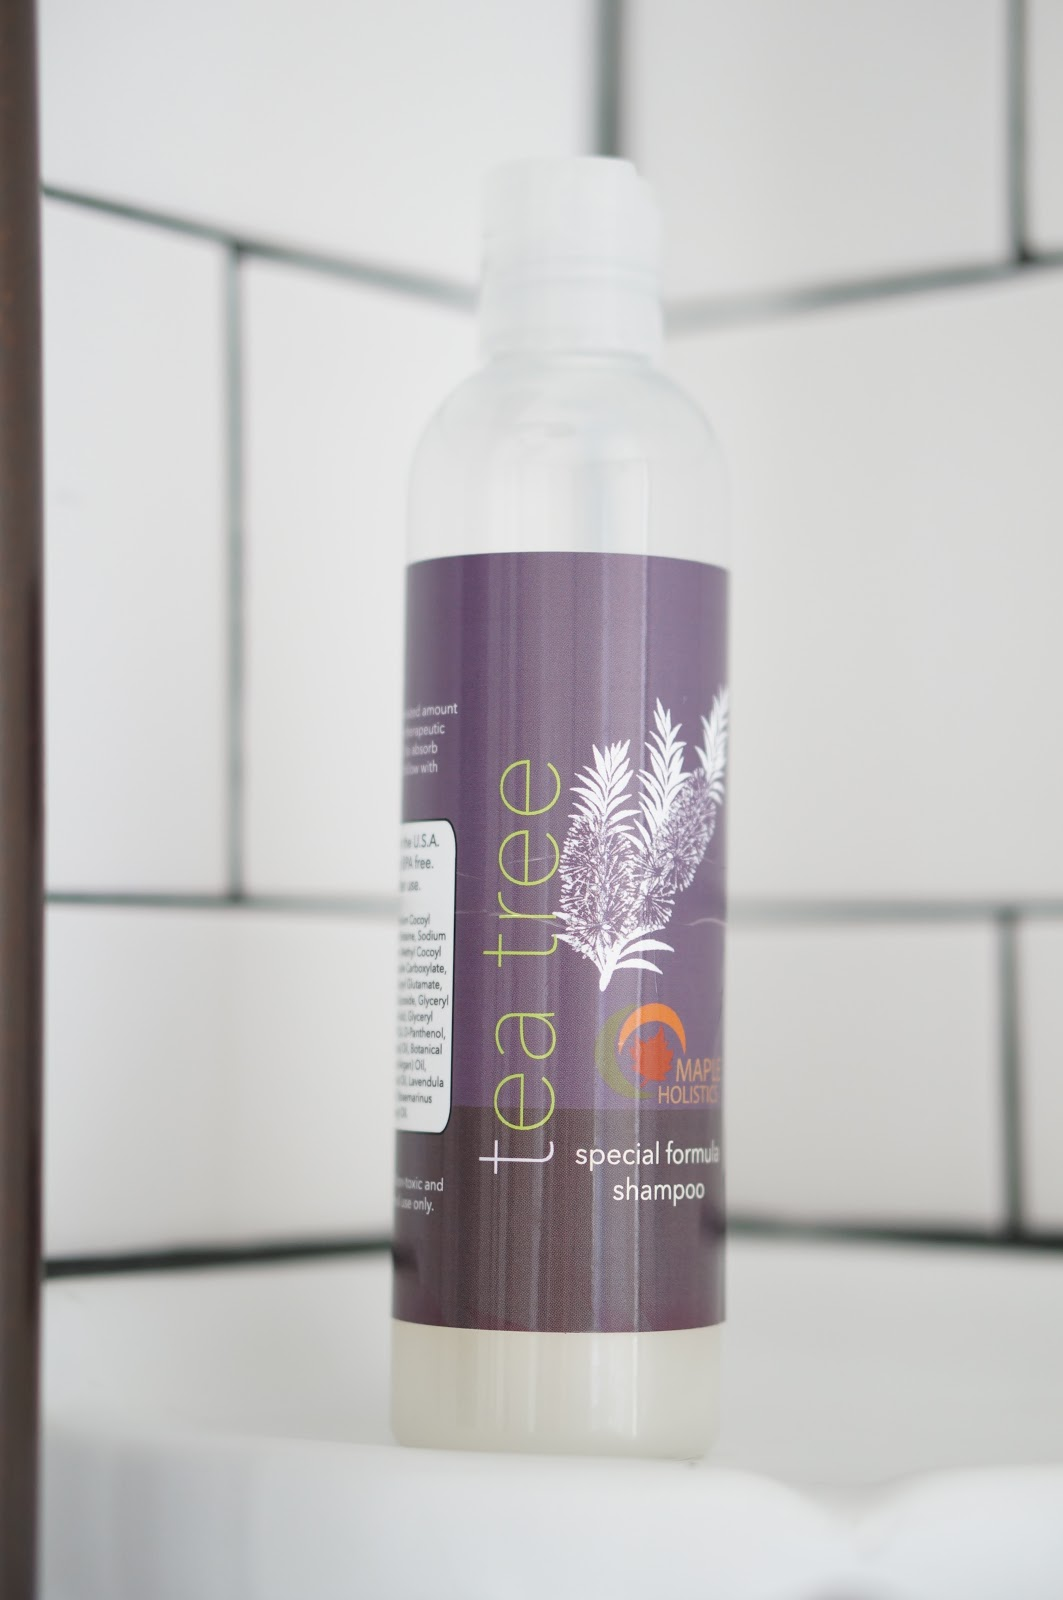 Rebecca Lately Cruelty Free Beauty Maple Holistics Tea Tree Oil Shampoo Review